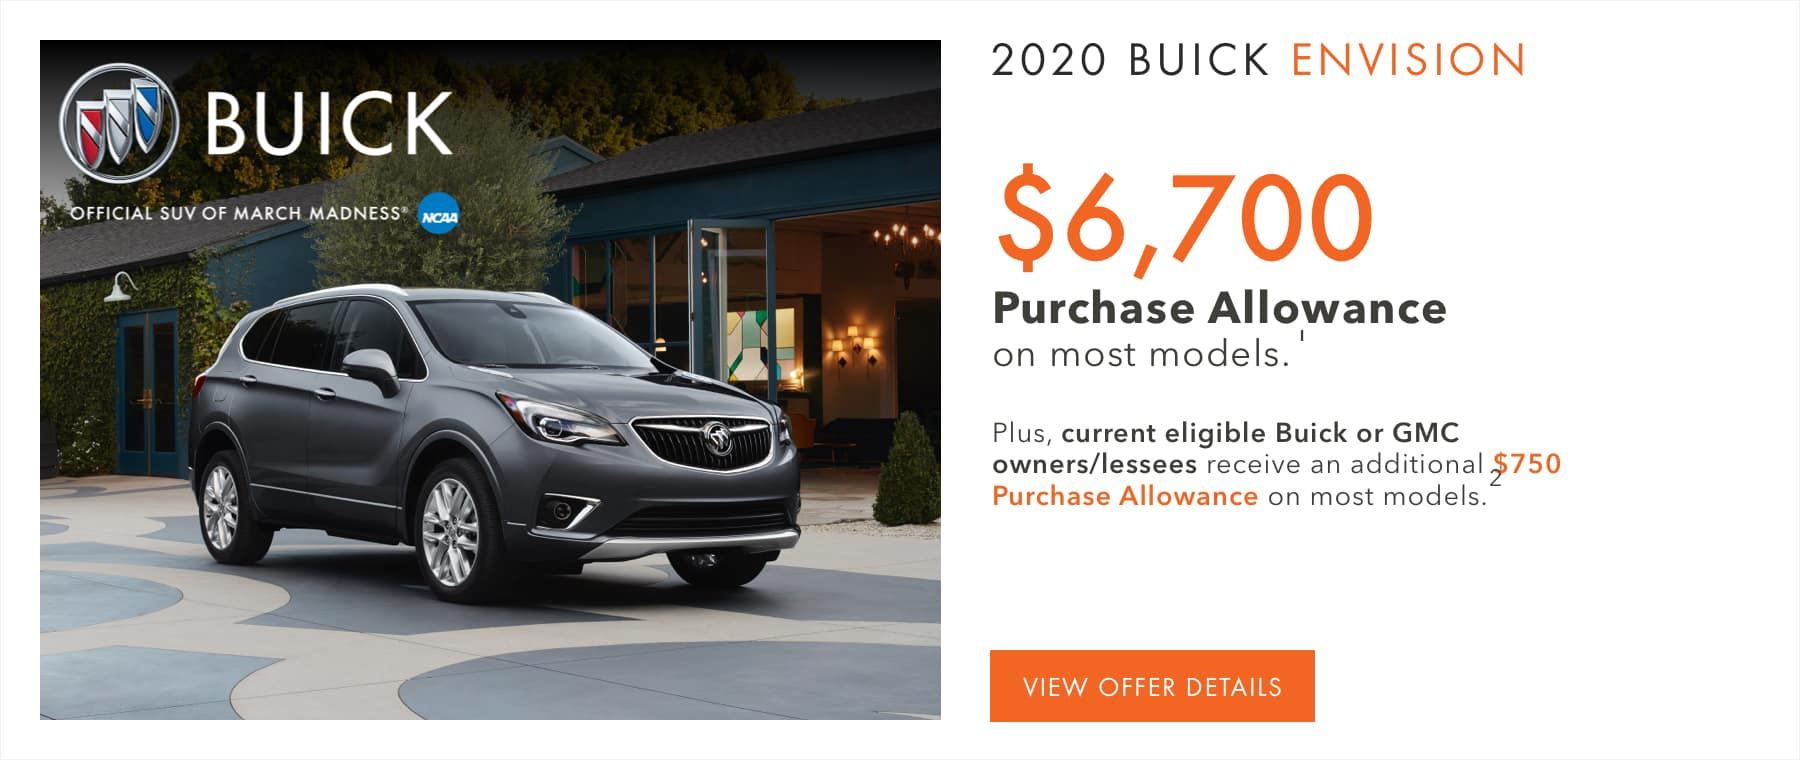 Price after all offers on this Envision.1 Plus, current eligible Buick or GMC owners/lessees receive an additional $750 Purchase Allowance on most models.2